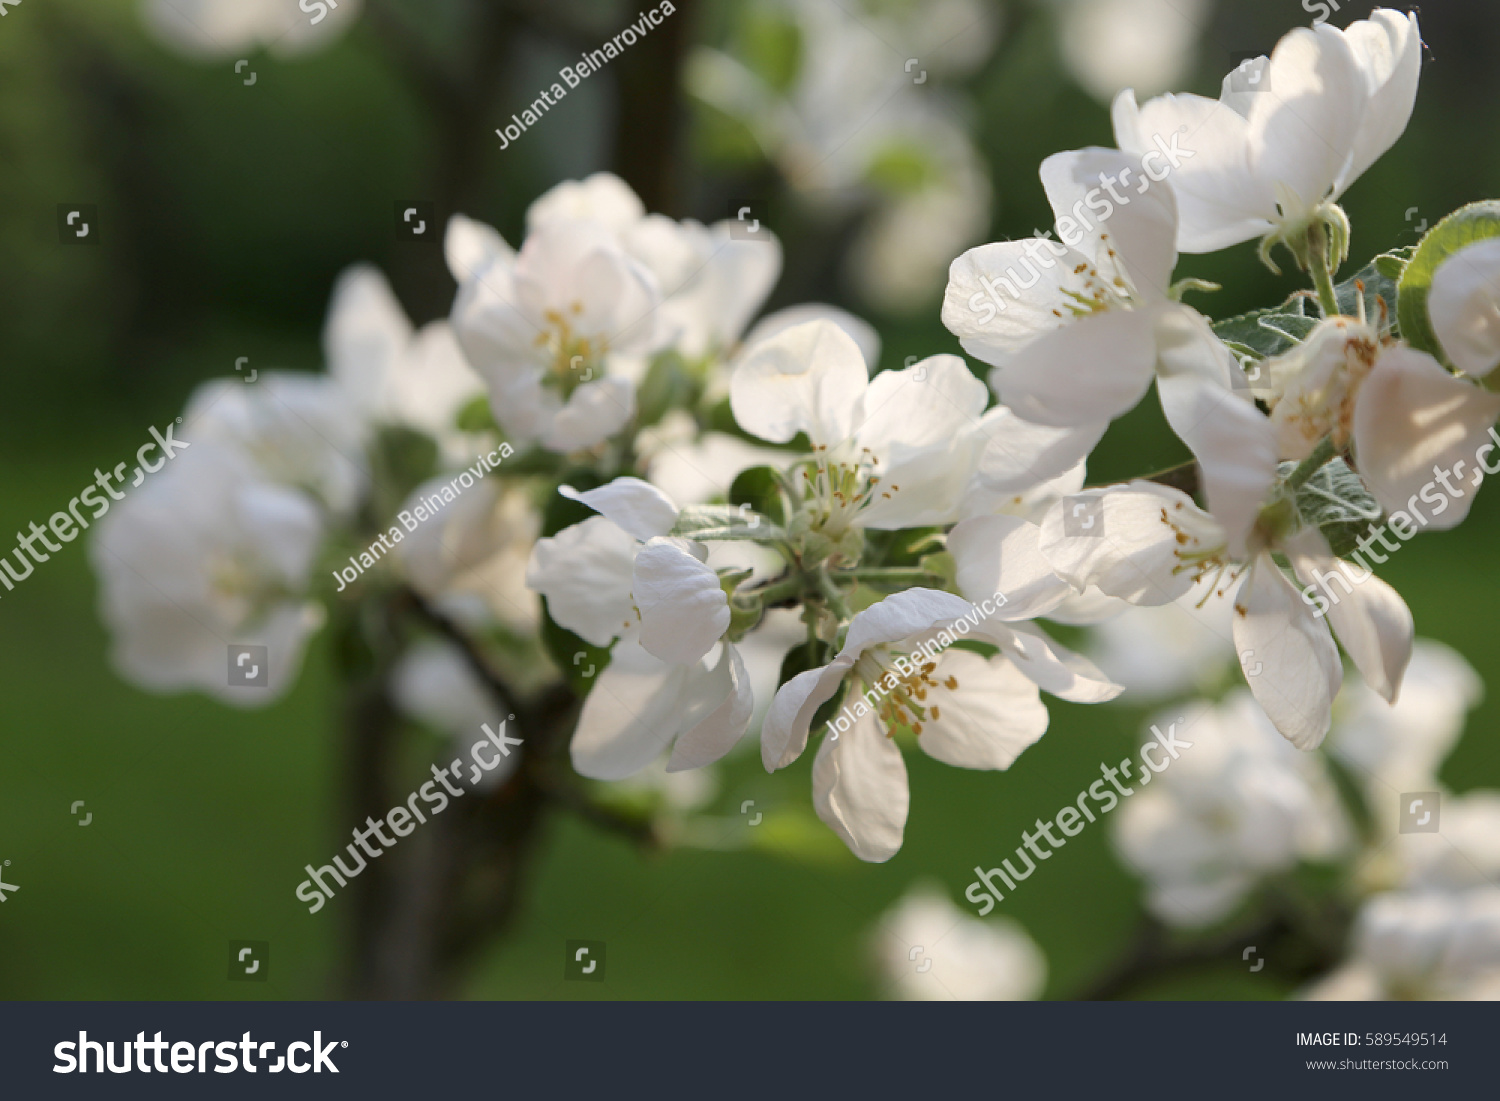 Big Flowers White With Pinkish Shade On Branches Of The Apple